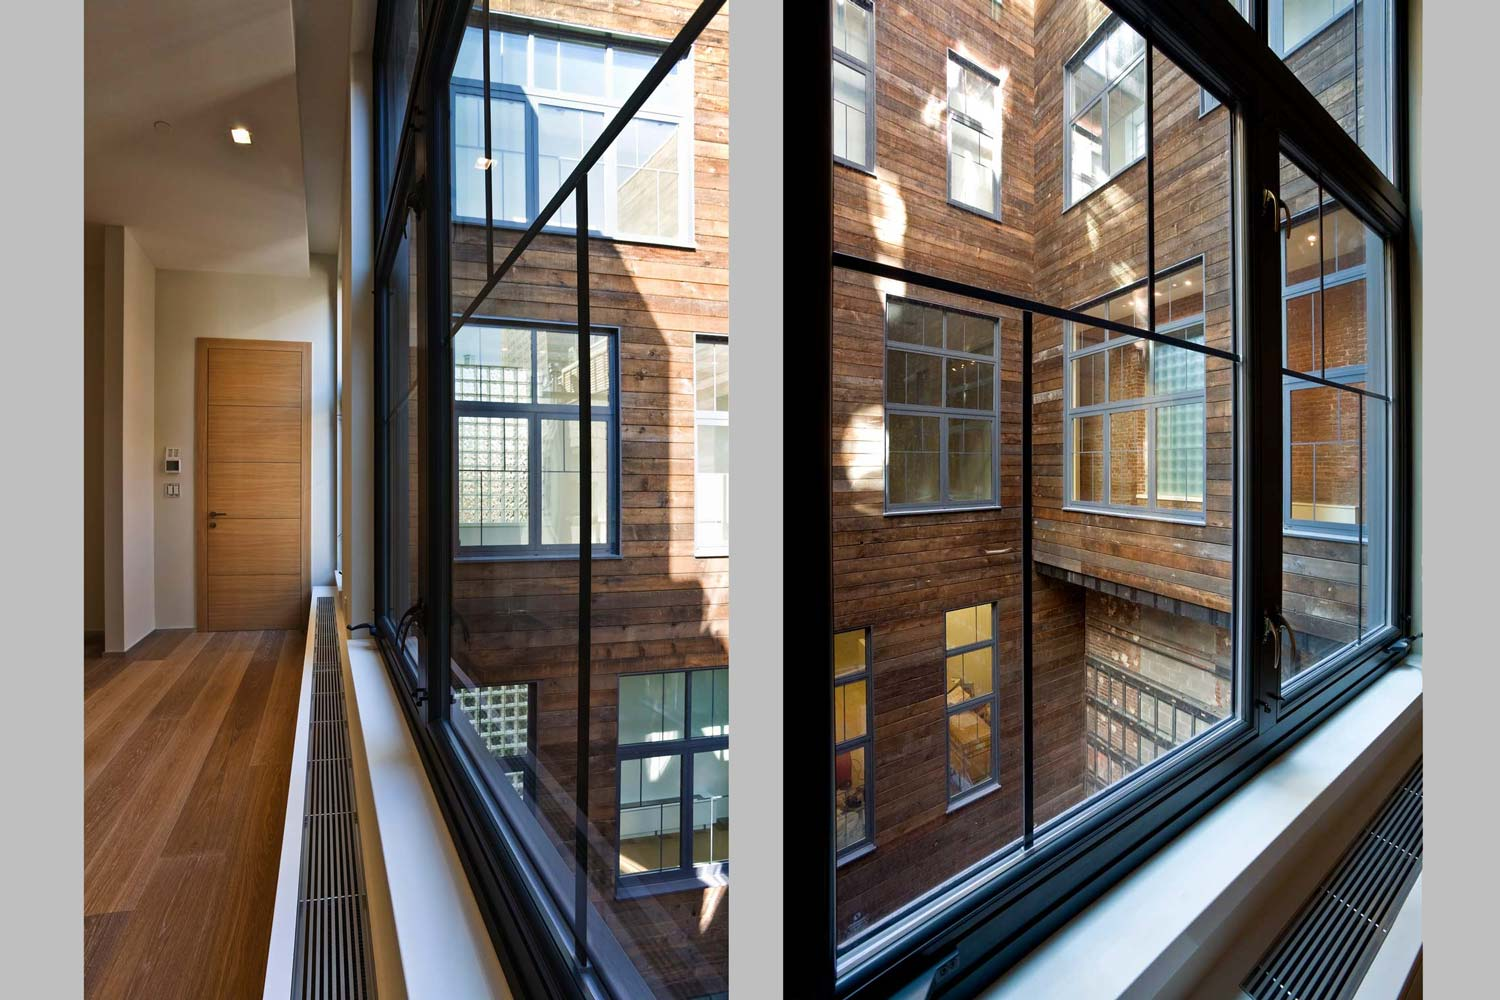 The courtyard echoes the history of the building through its reclaimed wood cladding.